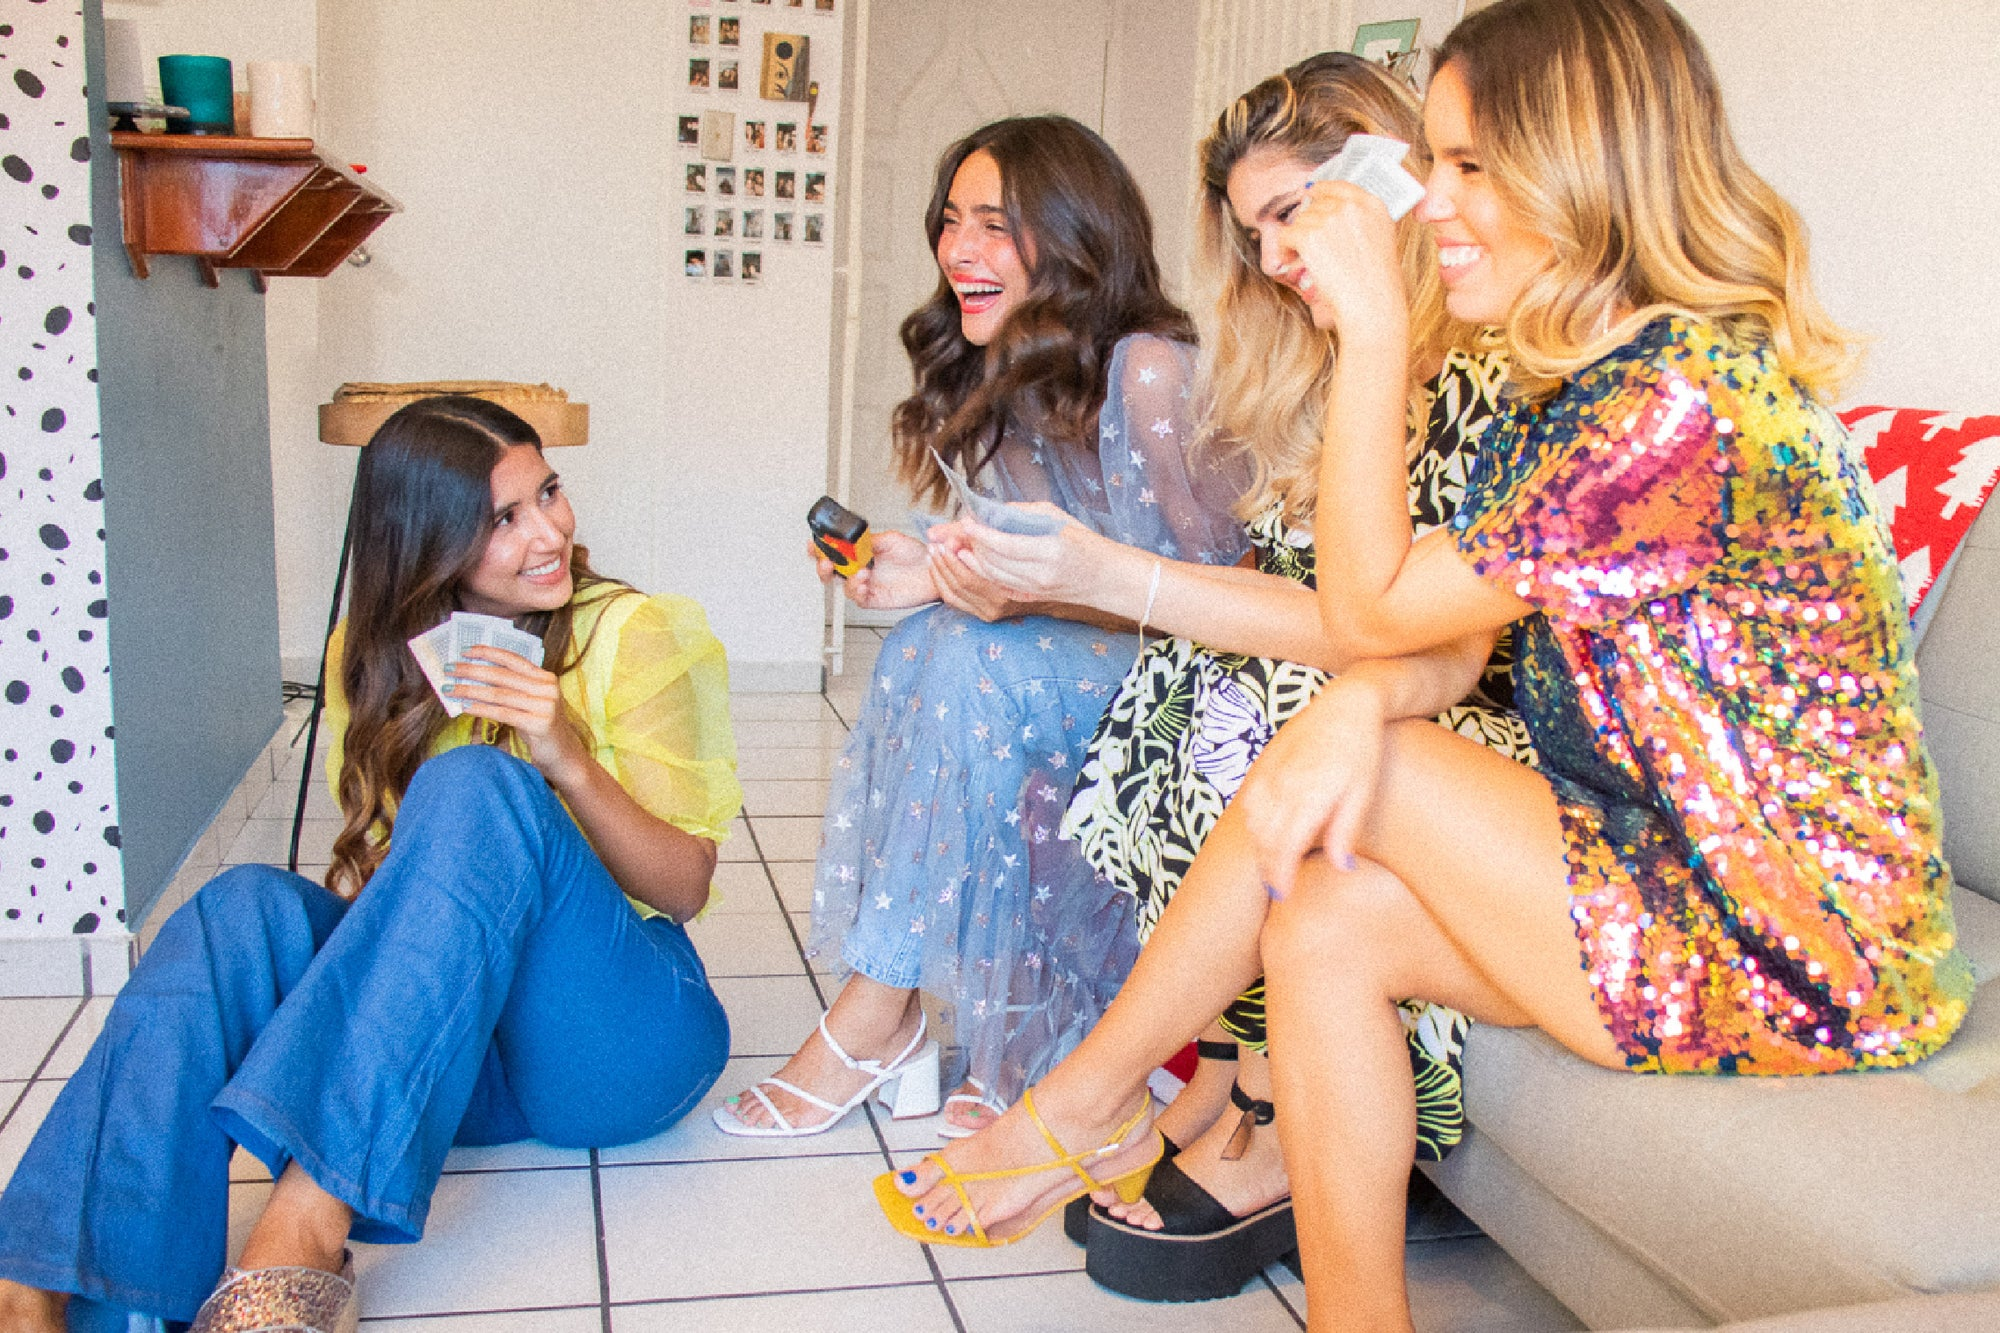 Picture of group of girl friends (The girls of Amapolia) playing cards and laughing.